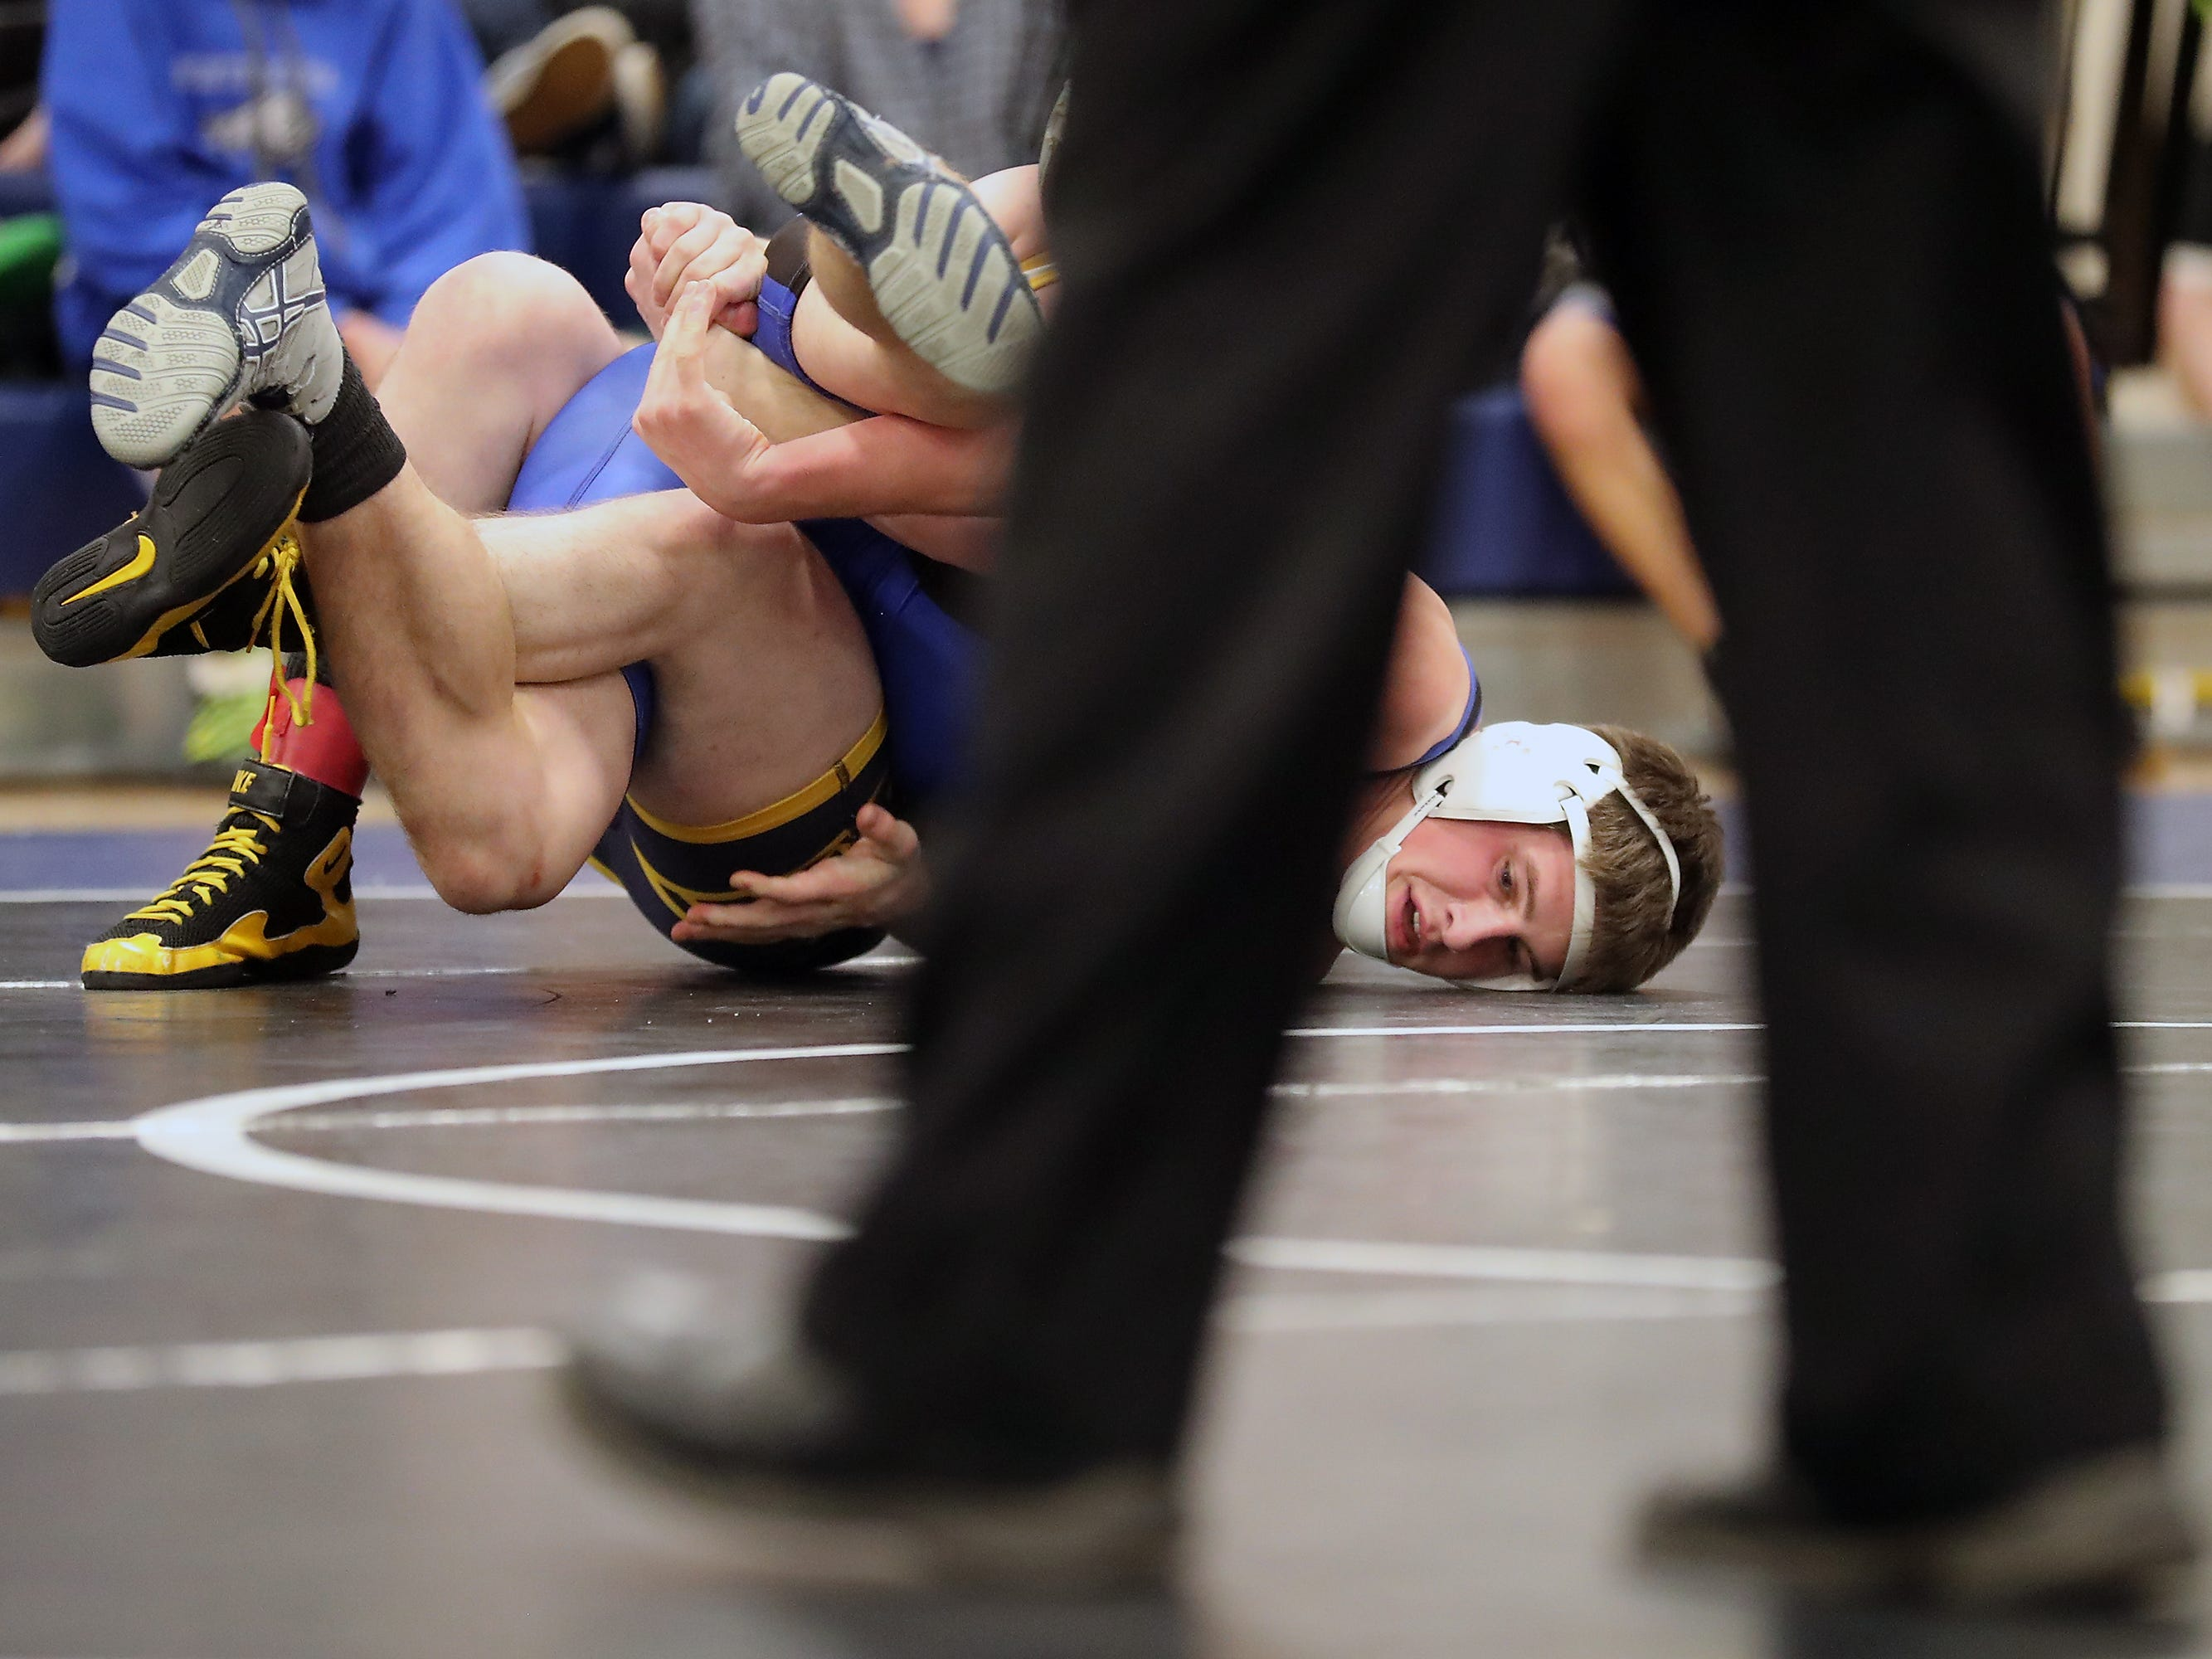 North Mason's Cole Varick and Aberdeen's Bodie Wharton grapple for the first place finish in the 152-pound weight class at the North Mason Classic in Belfair on Saturday, December 22, 2018.